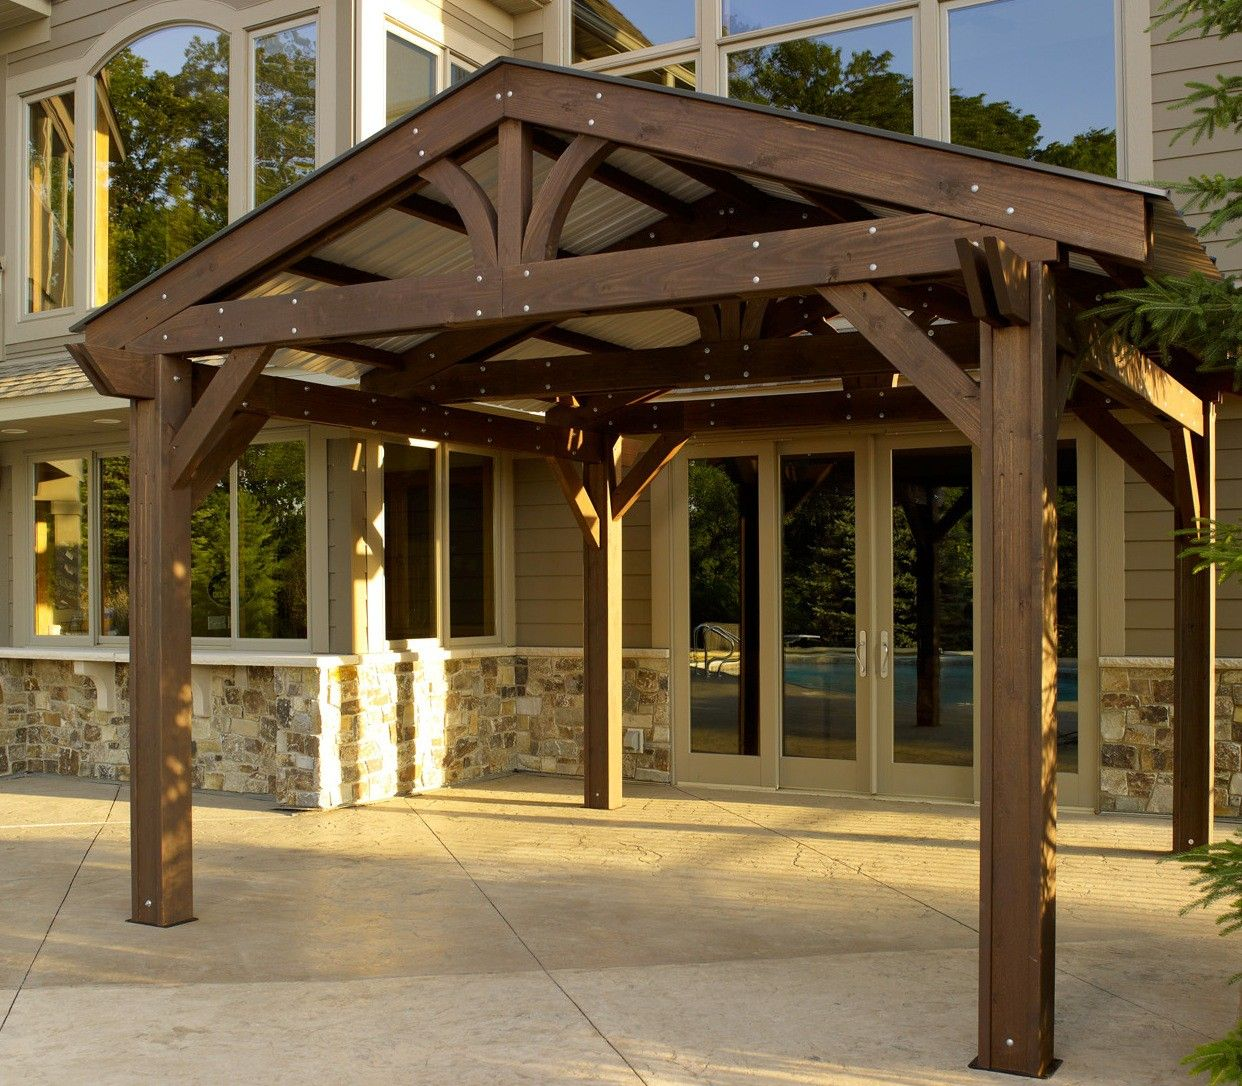 Roof for pergola, pergola with roof cover picture